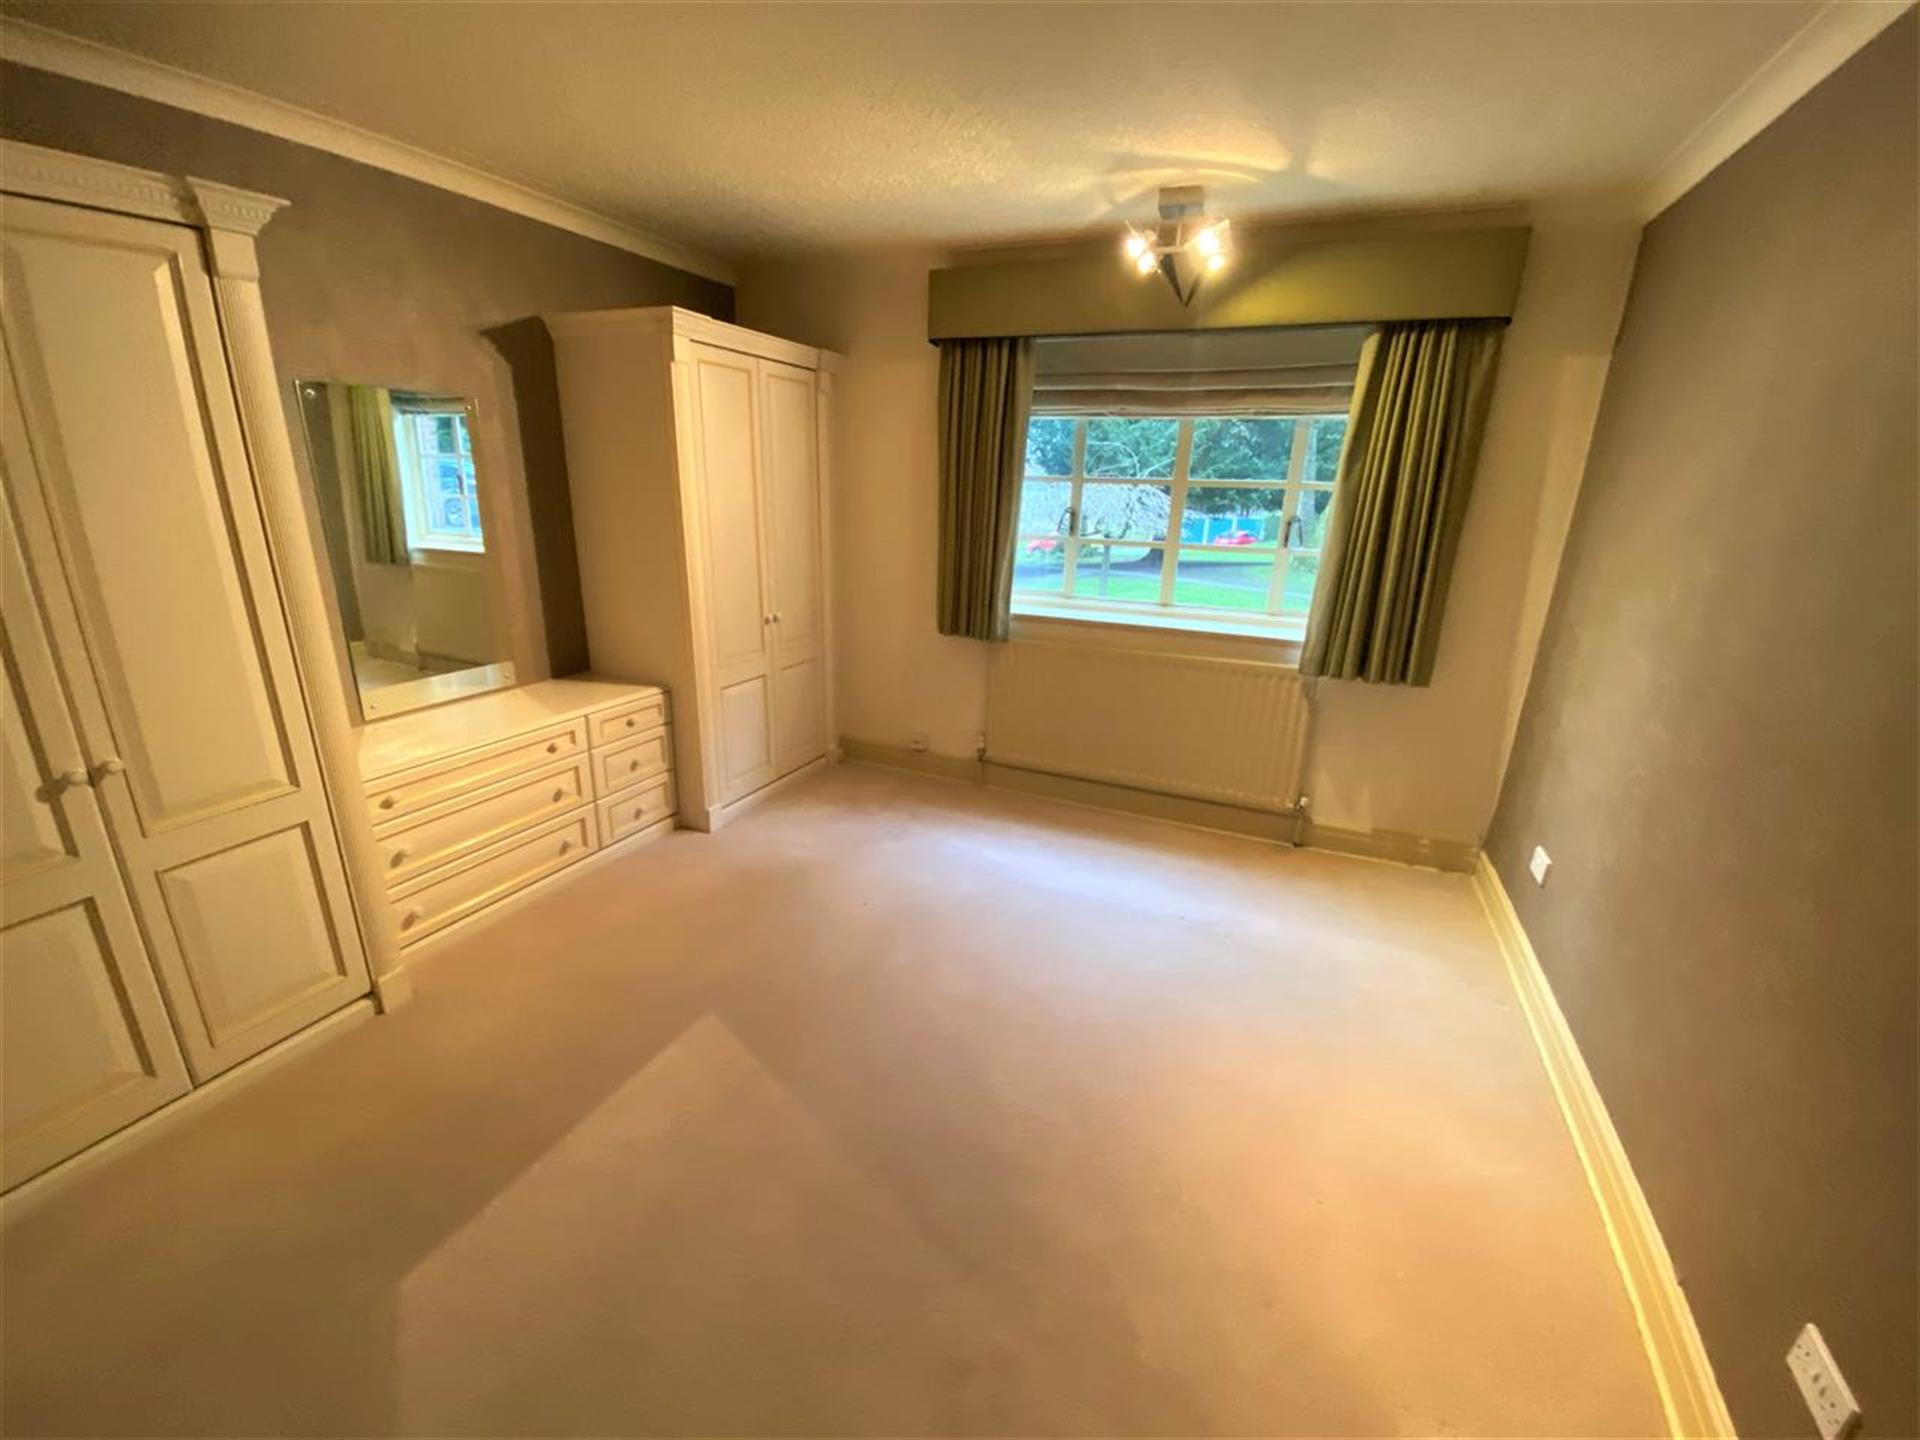 2 Bedroom Apartment Flat / Apartment For Sale - Bedroom One